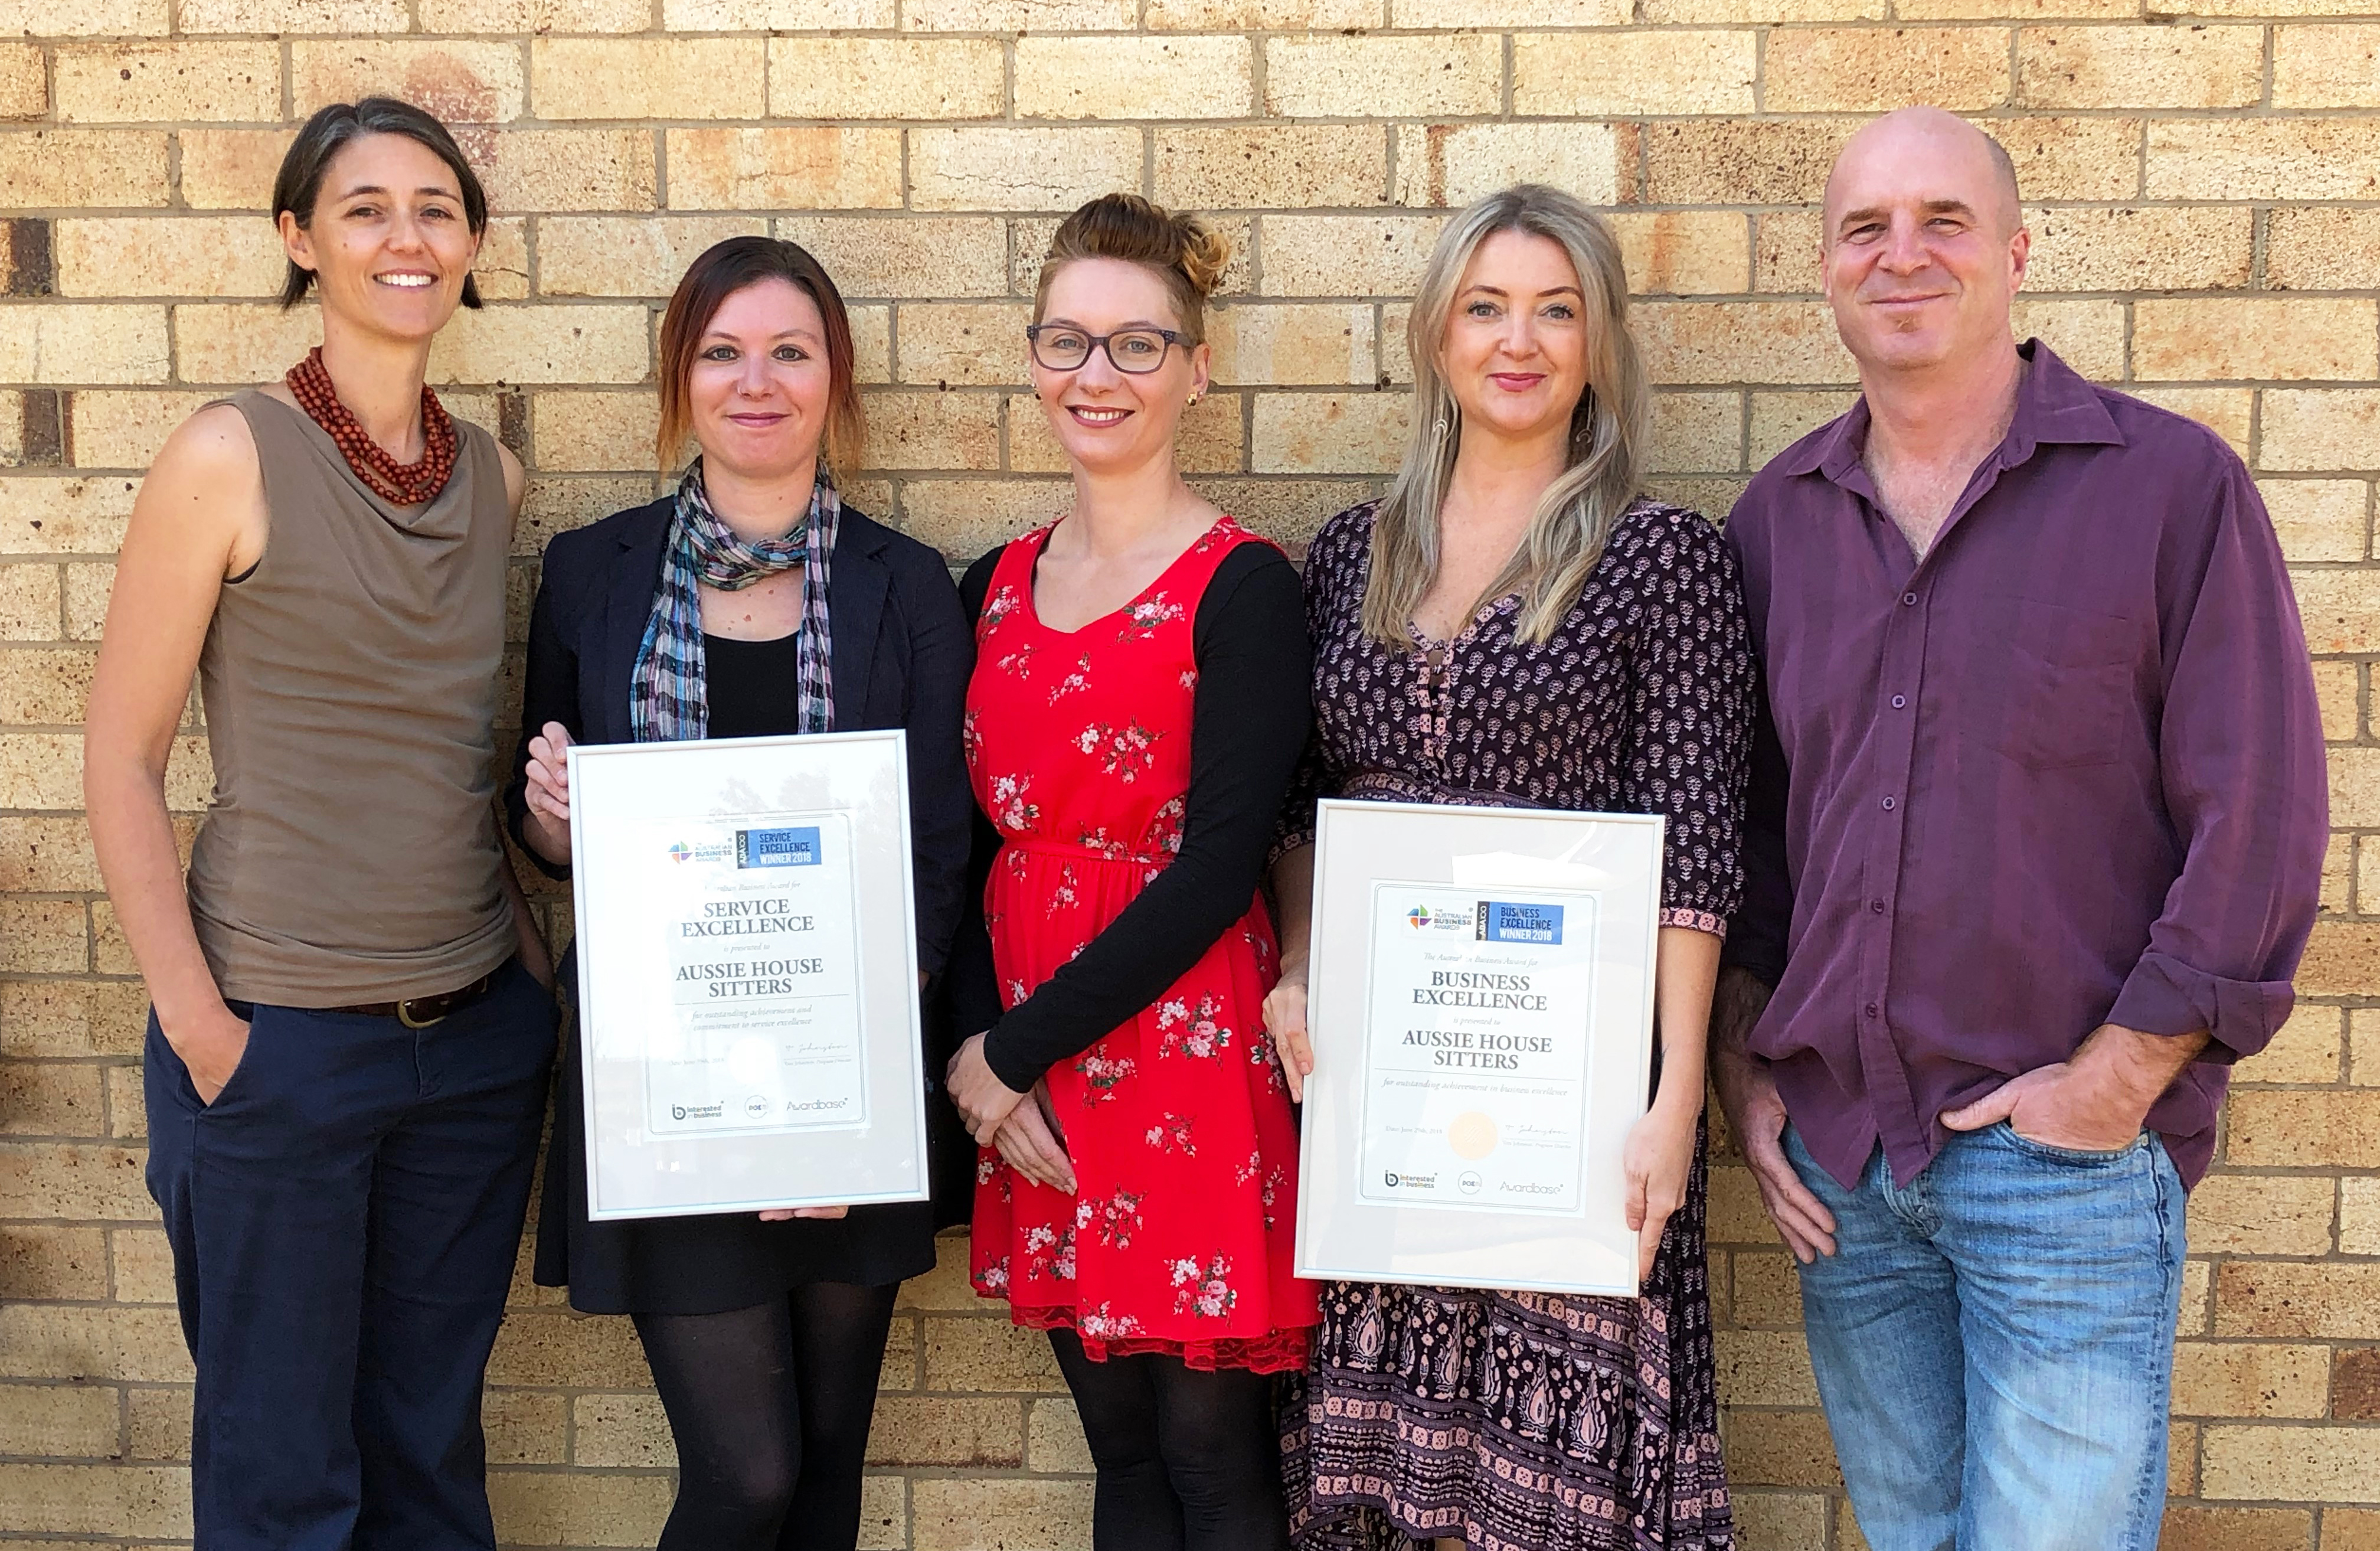 ABA100 Awards for Aussie House Sitters